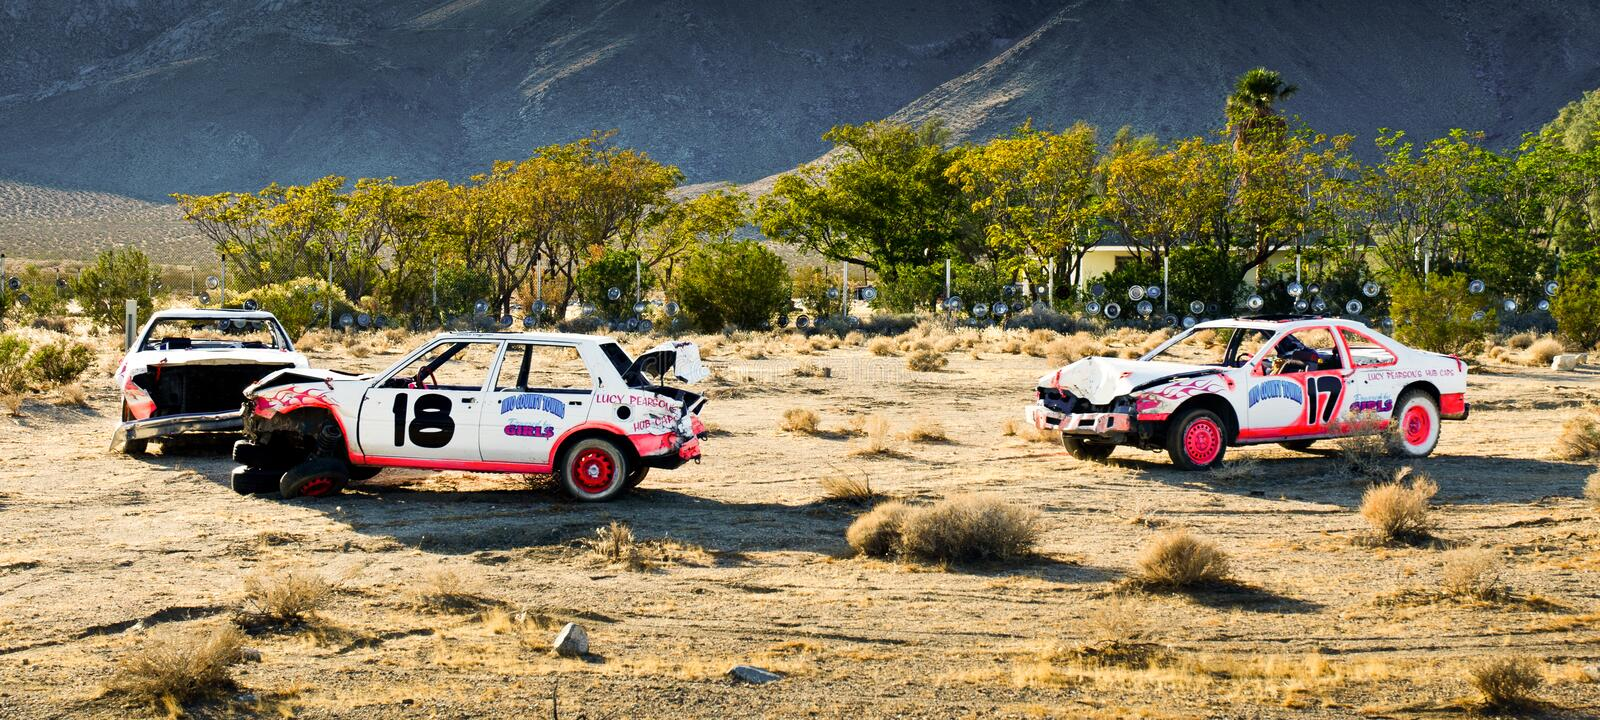 Demolition Derby Aftermath royalty free stock photography